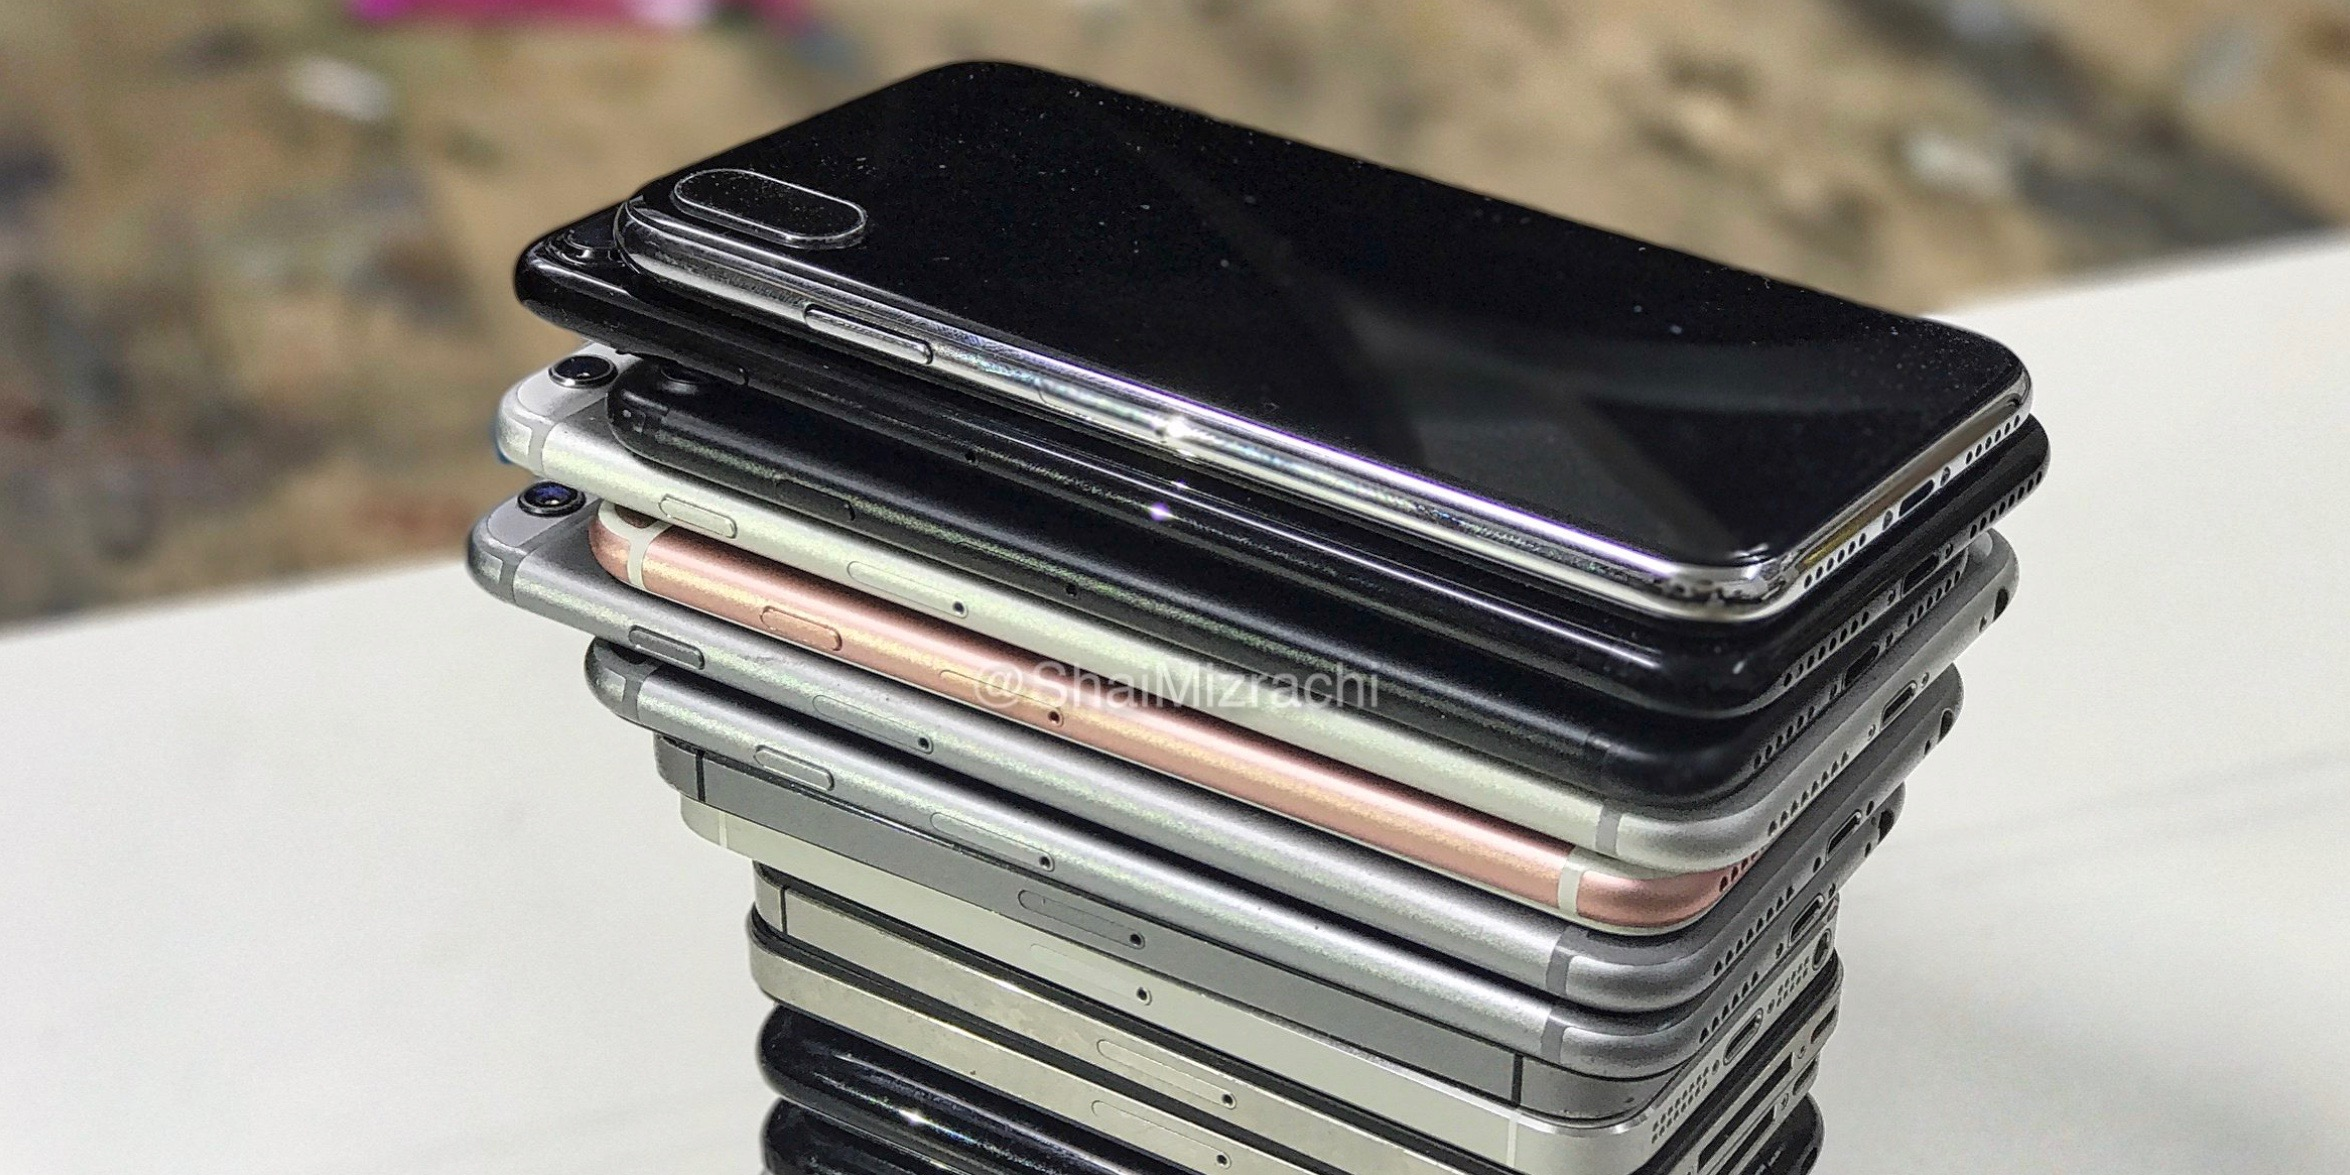 Test compares cellular speeds for top iPhone models, difference between the iPhone 5s and XS, more